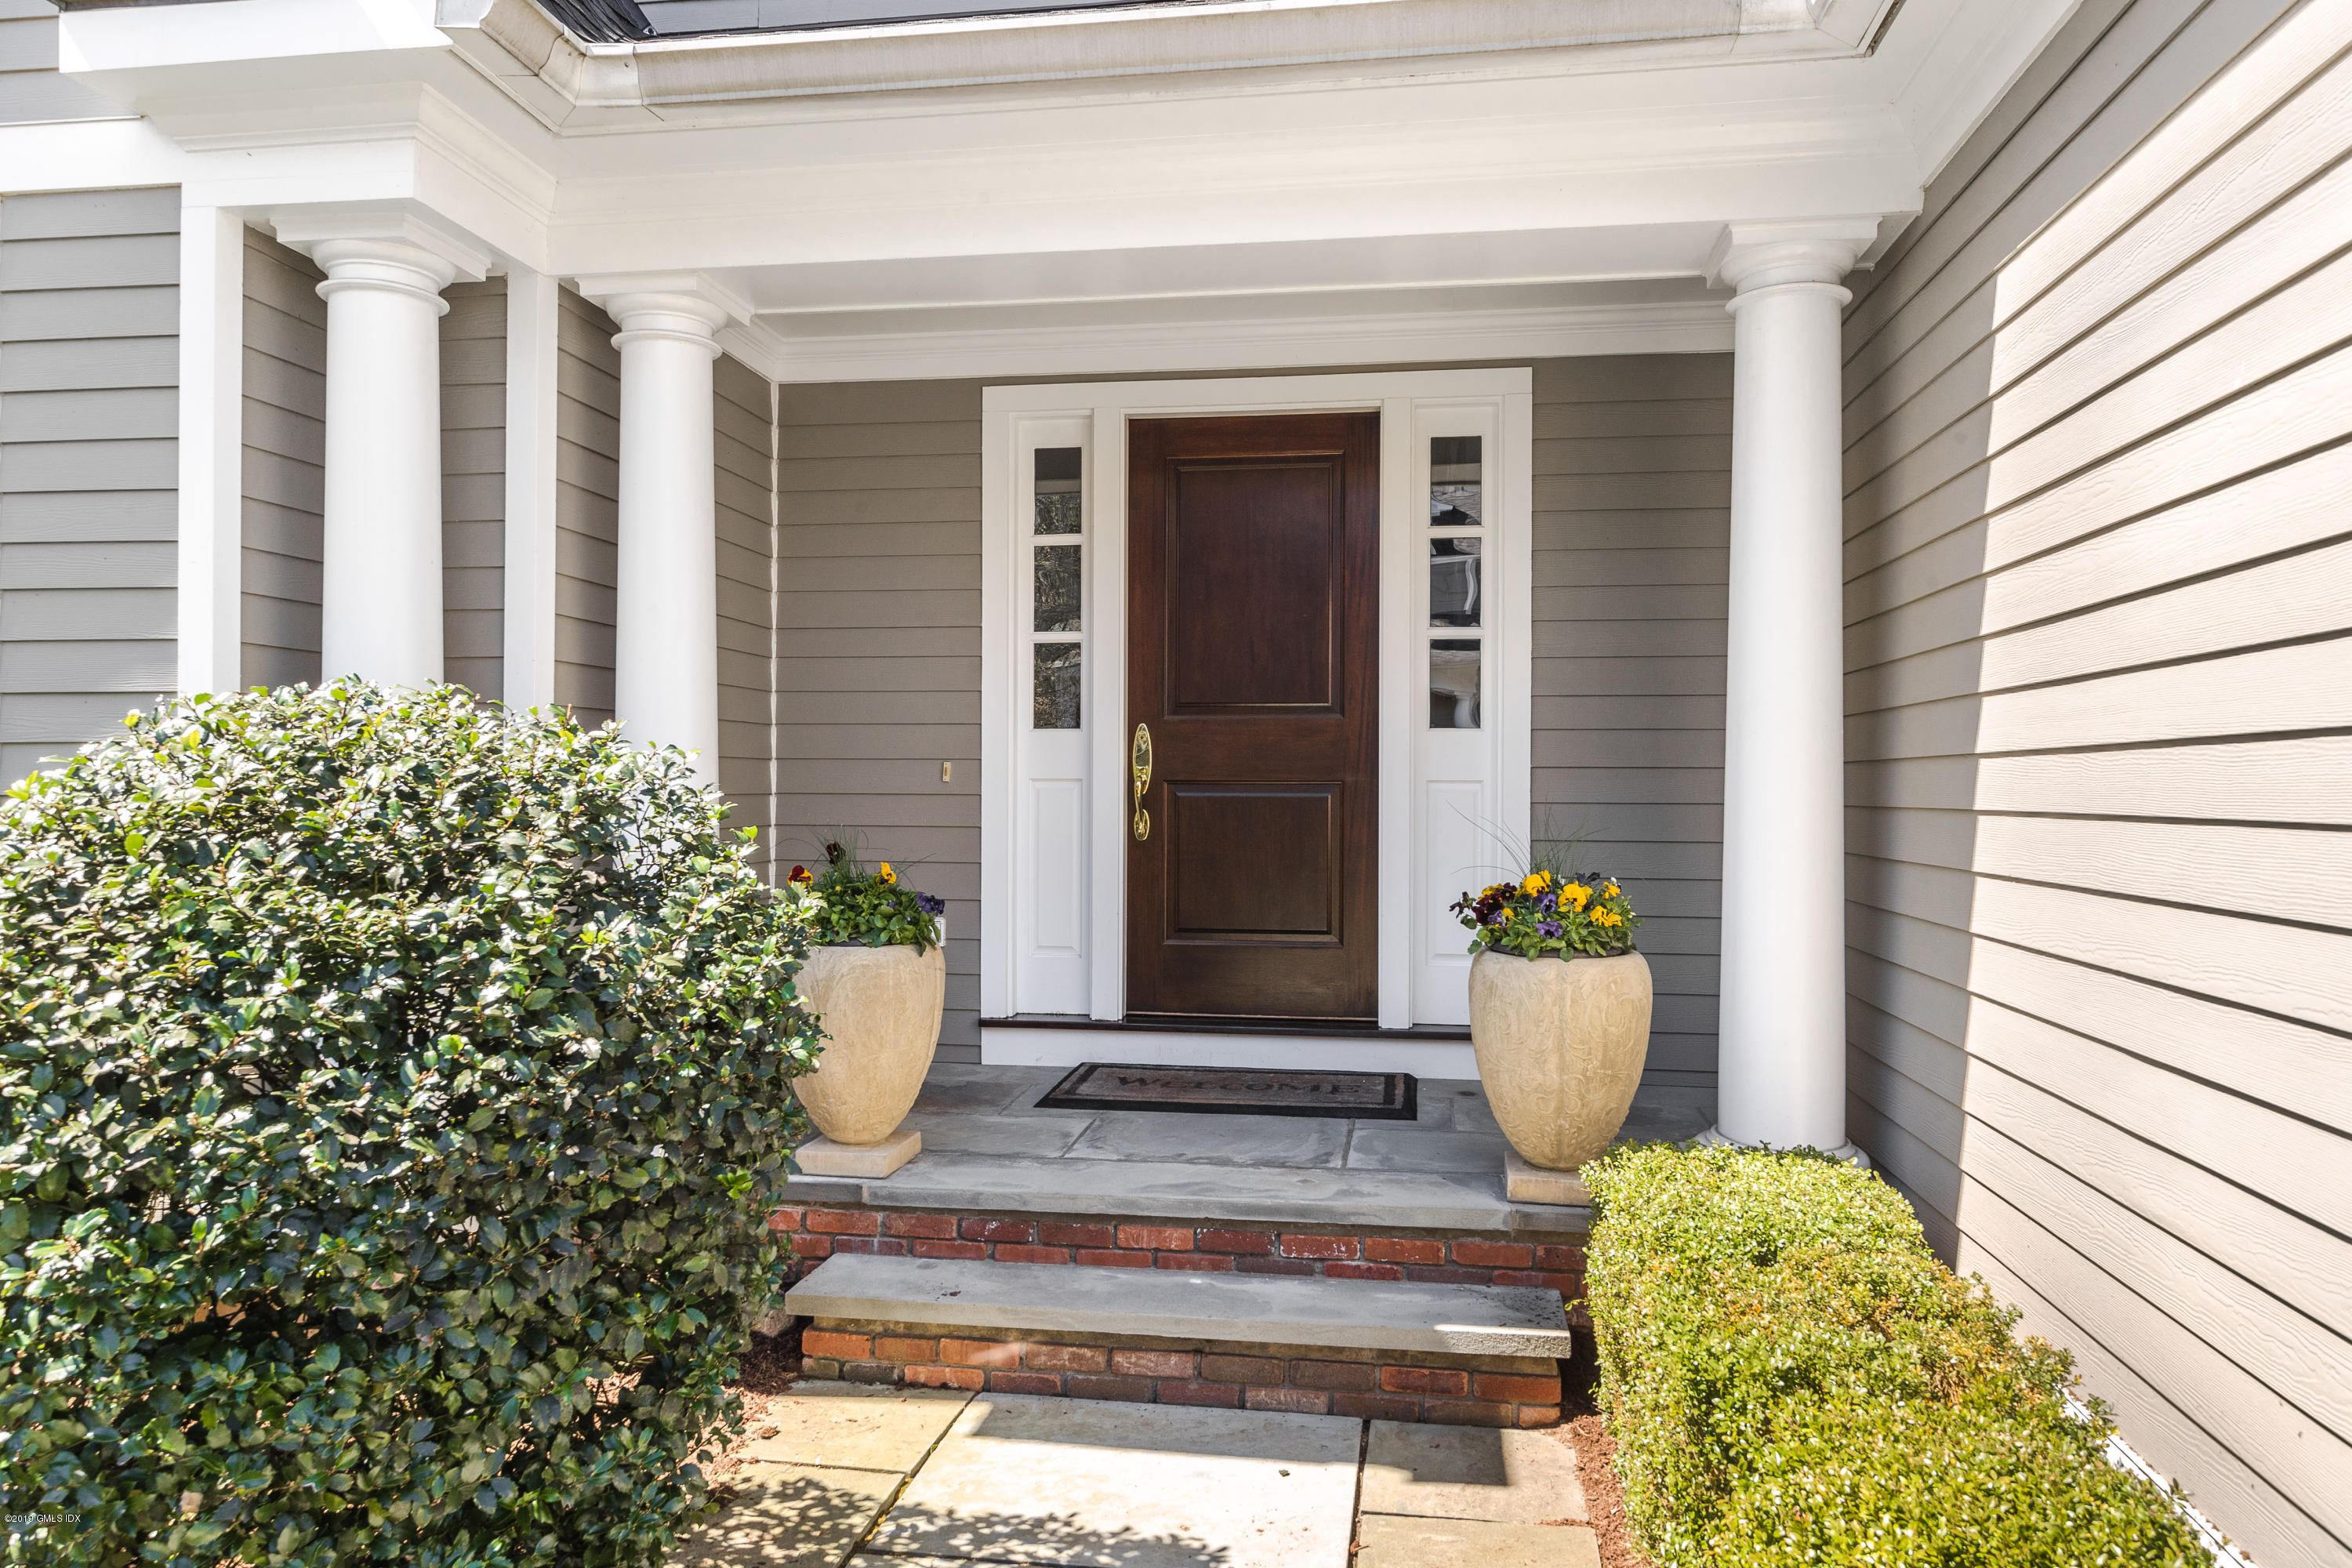 46 Waterview Way, #46, Stamford, CT 06902